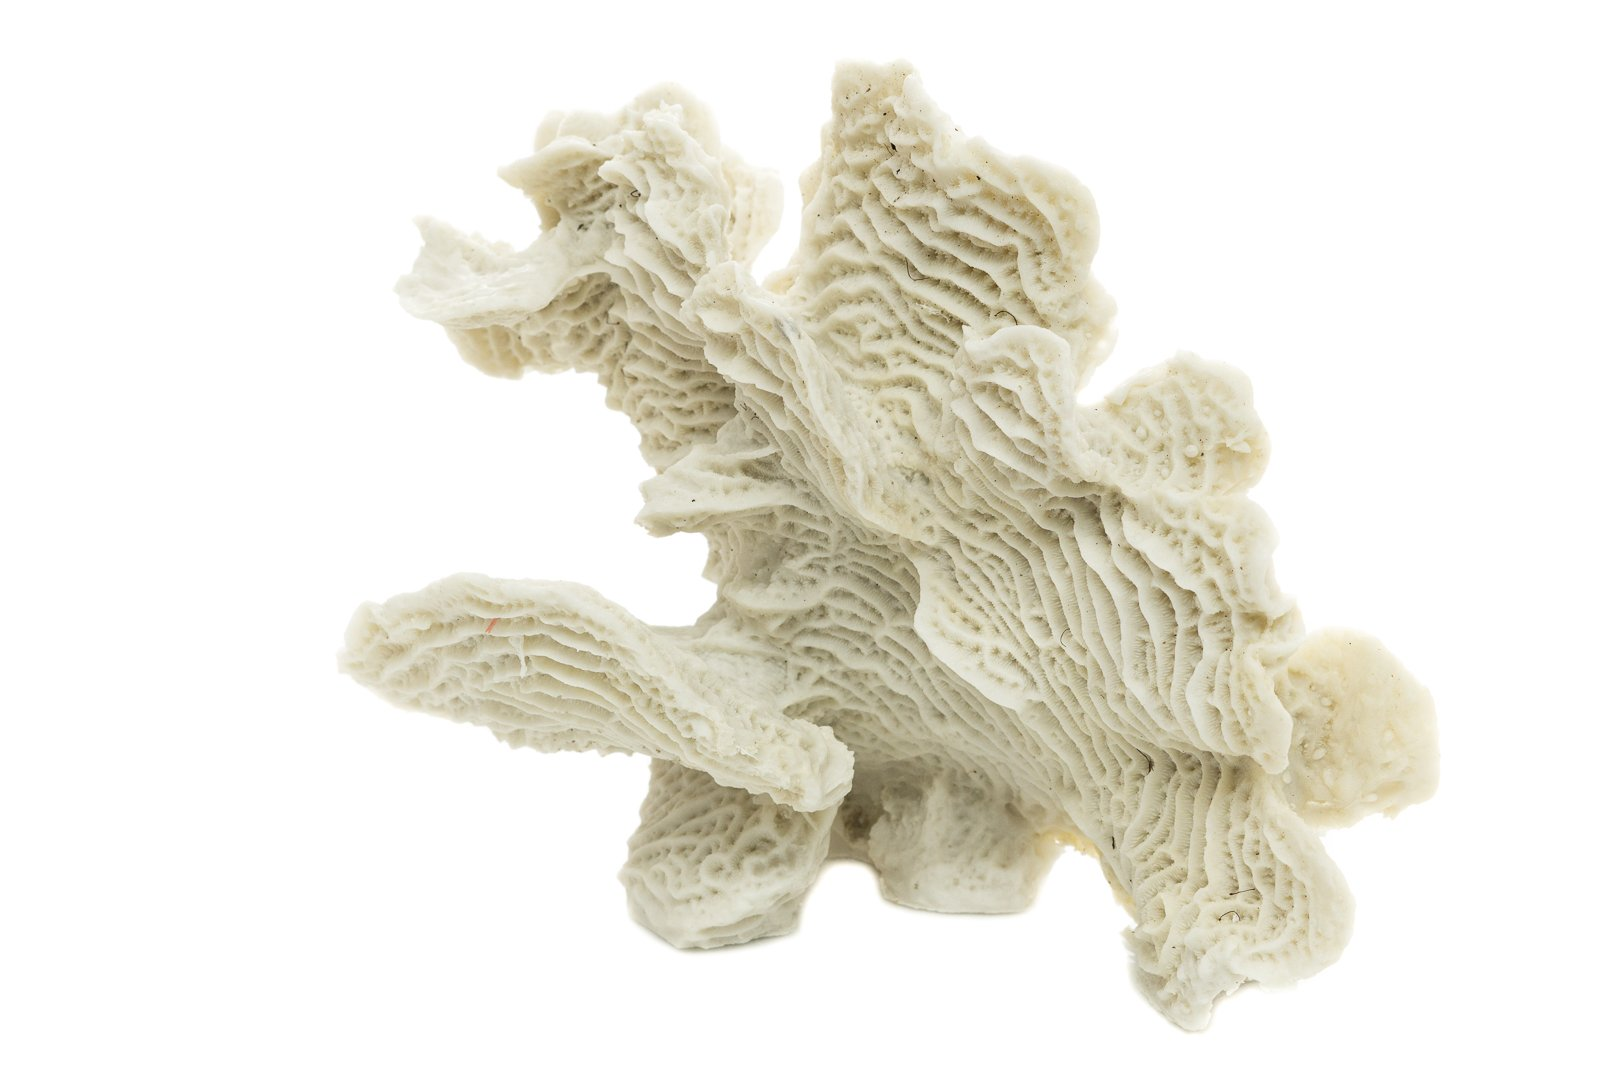 Corduroy Coral | White Resin Coral Piece | 10'' X 6'' | Aquarium Ornament for Decoration | Coral for Craft | Nautical Crush Trading TM